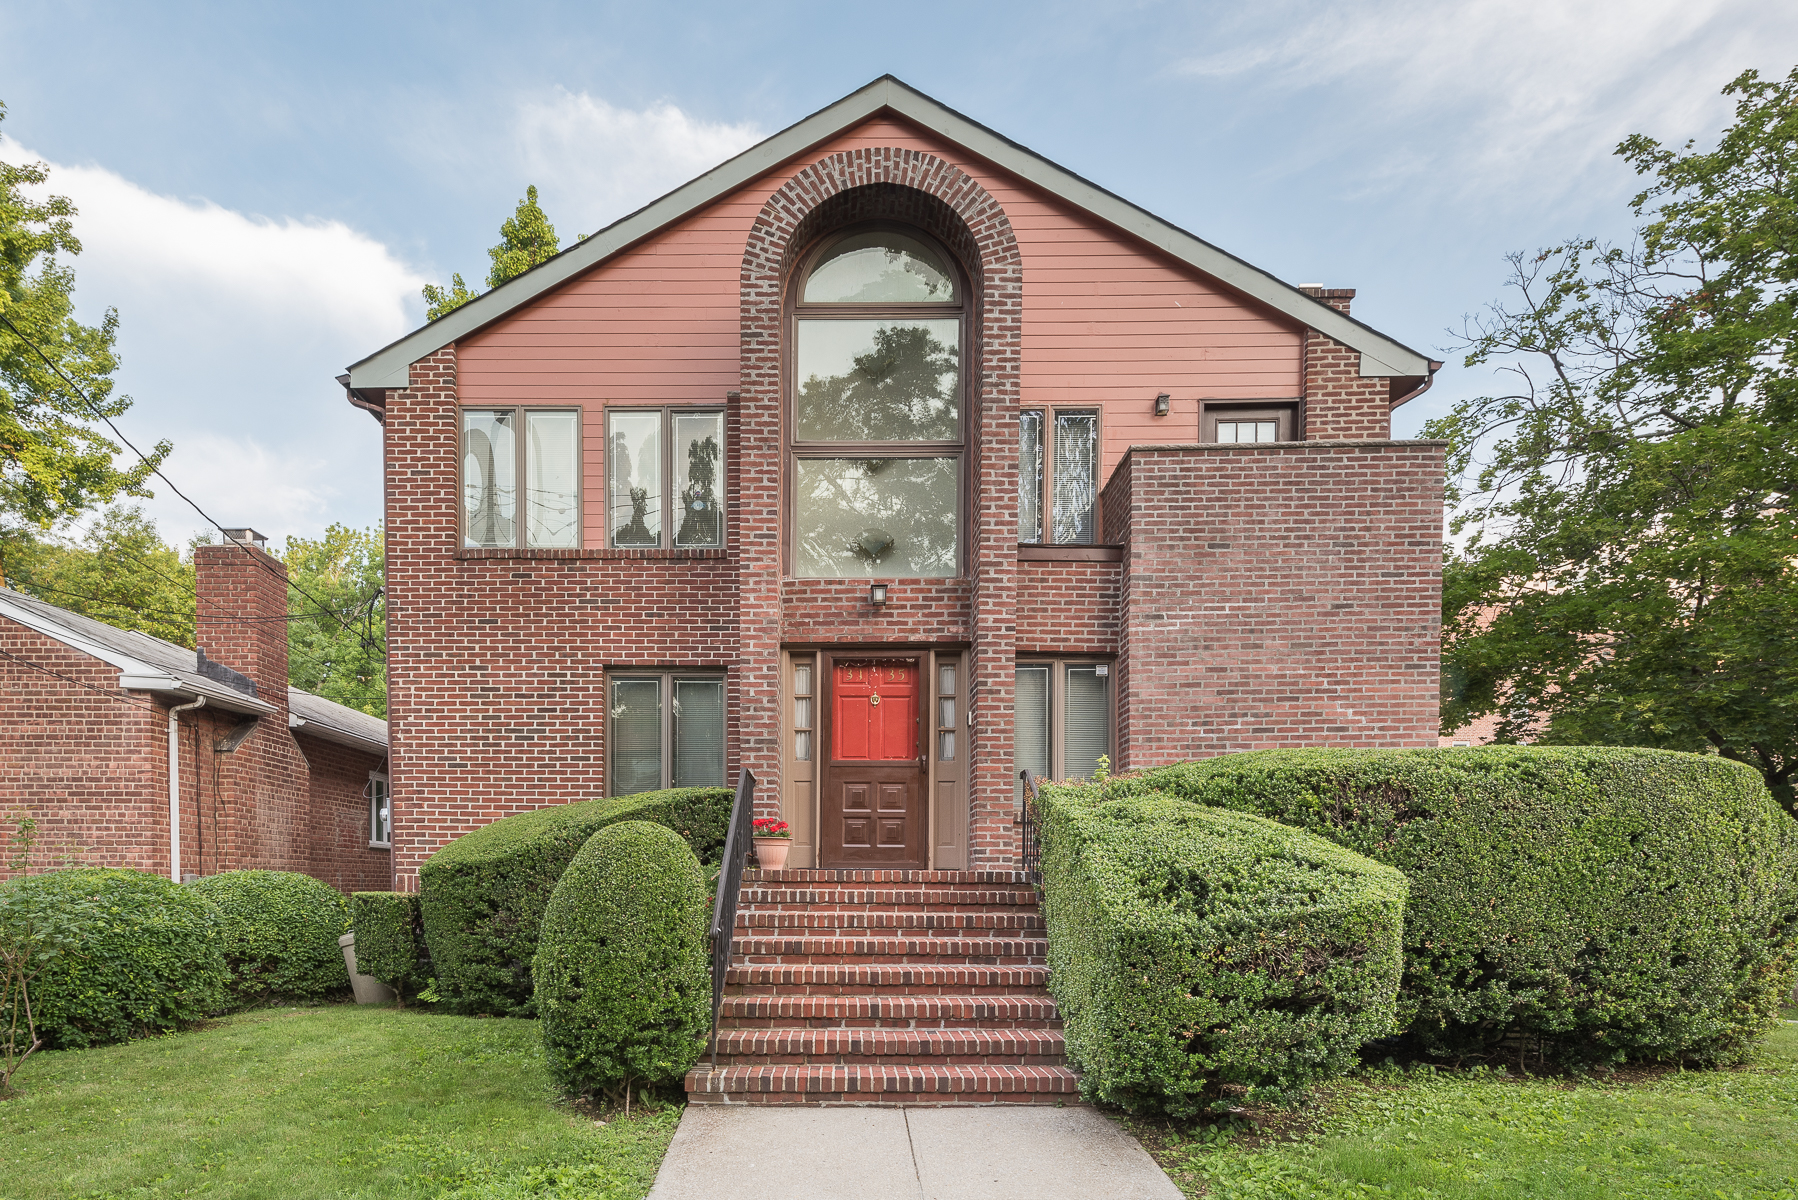 Maison unifamiliale pour l Vente à Detached Corner Brick House 3135 Arlington Avenue Riverdale, New York, 10463 États-Unis